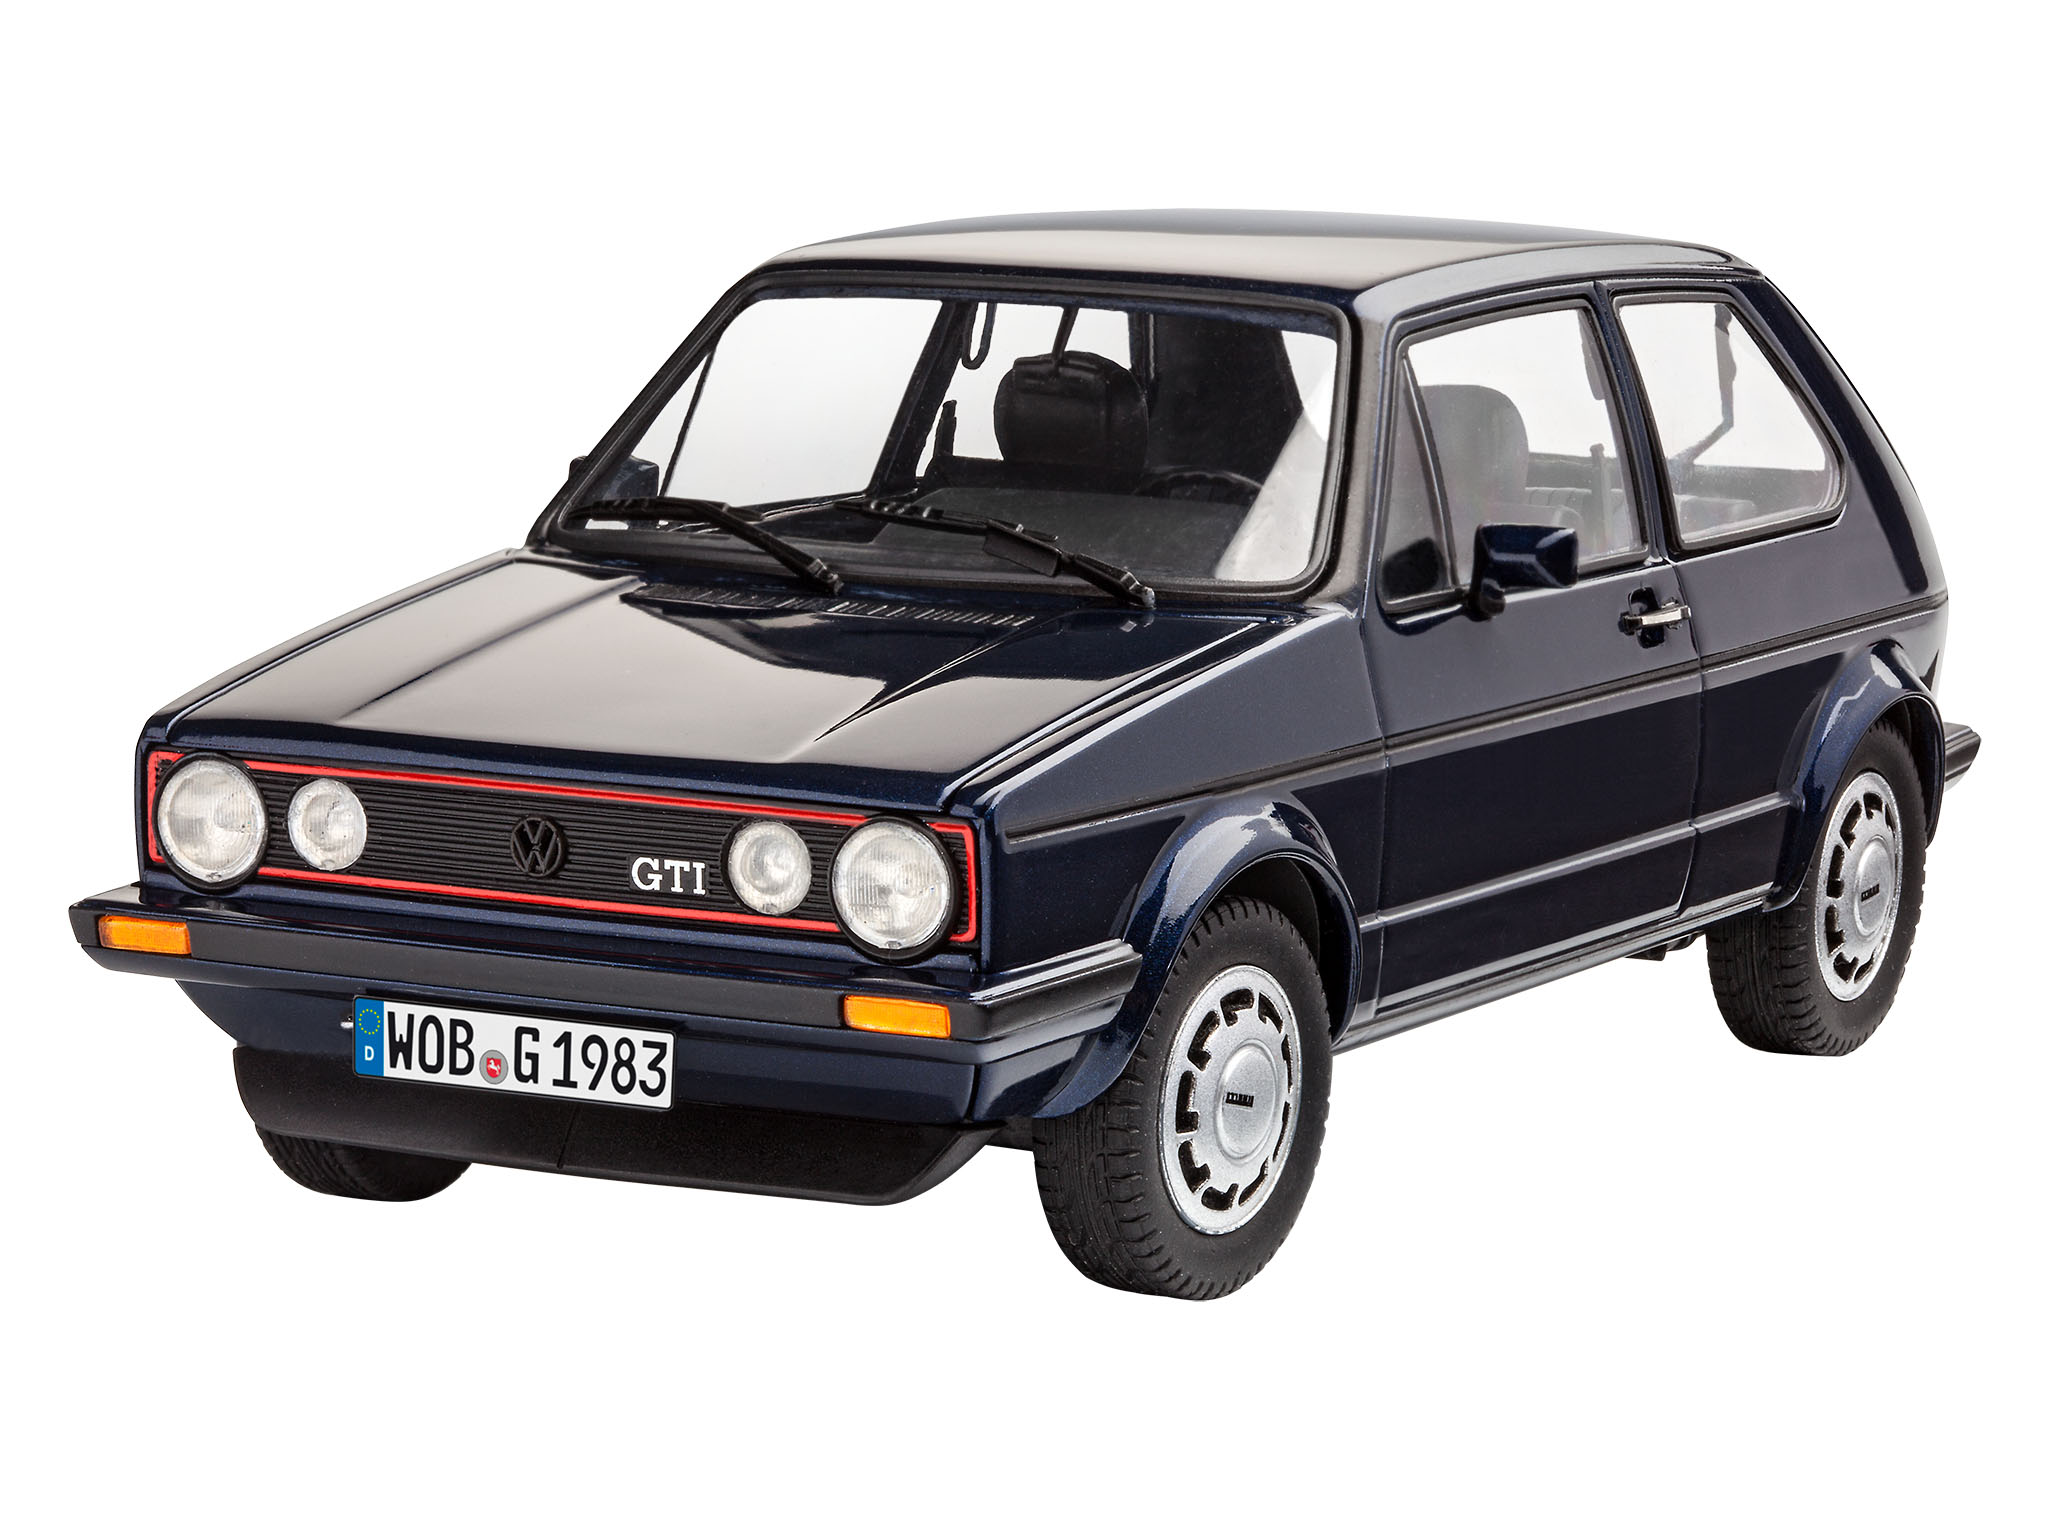 revell 35 years vw golf 1 gti pirelli